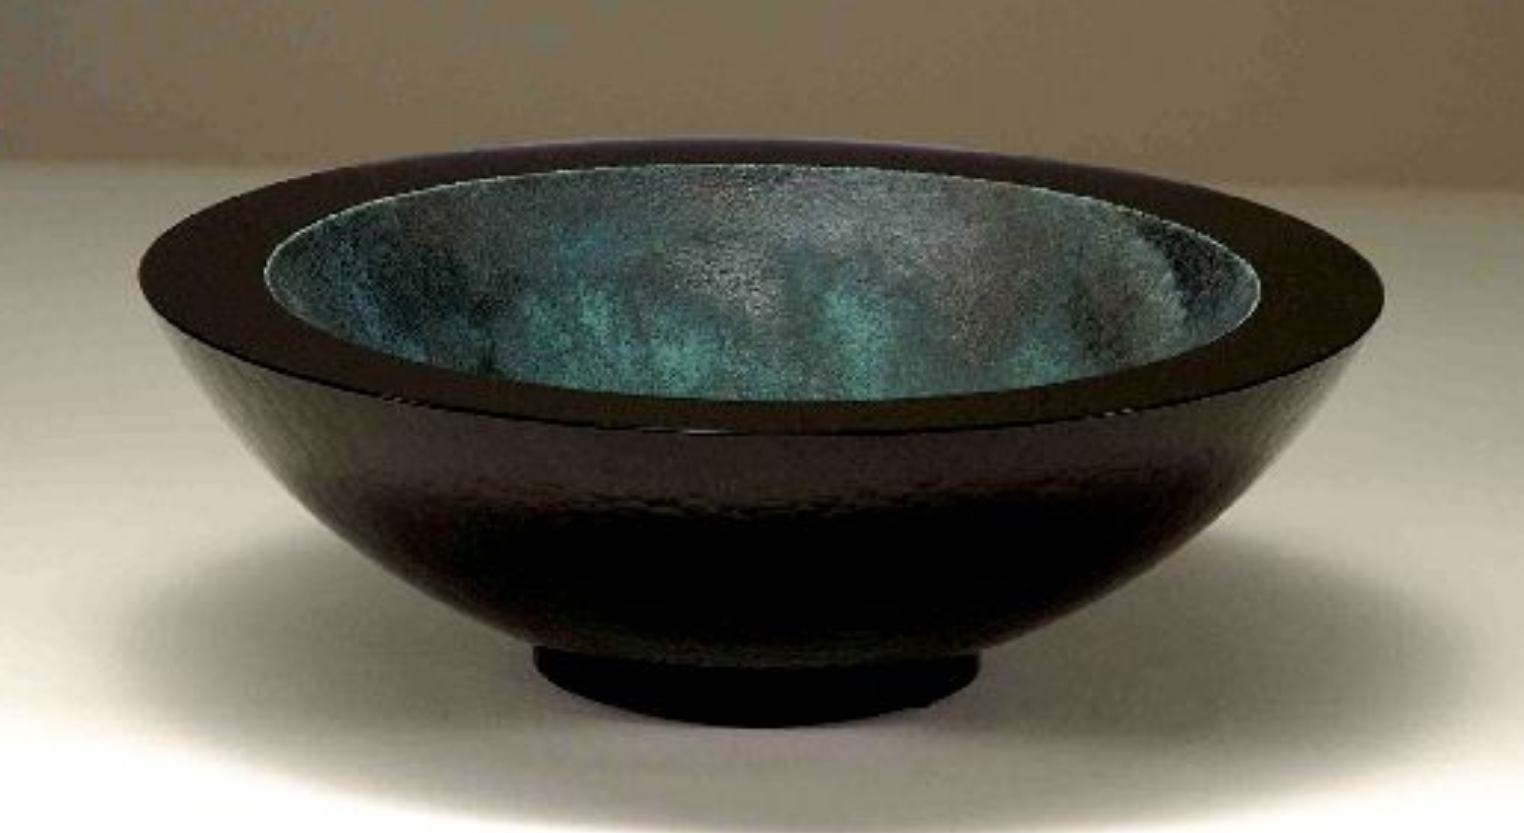 Glass and metal bowl by artist John Lewis